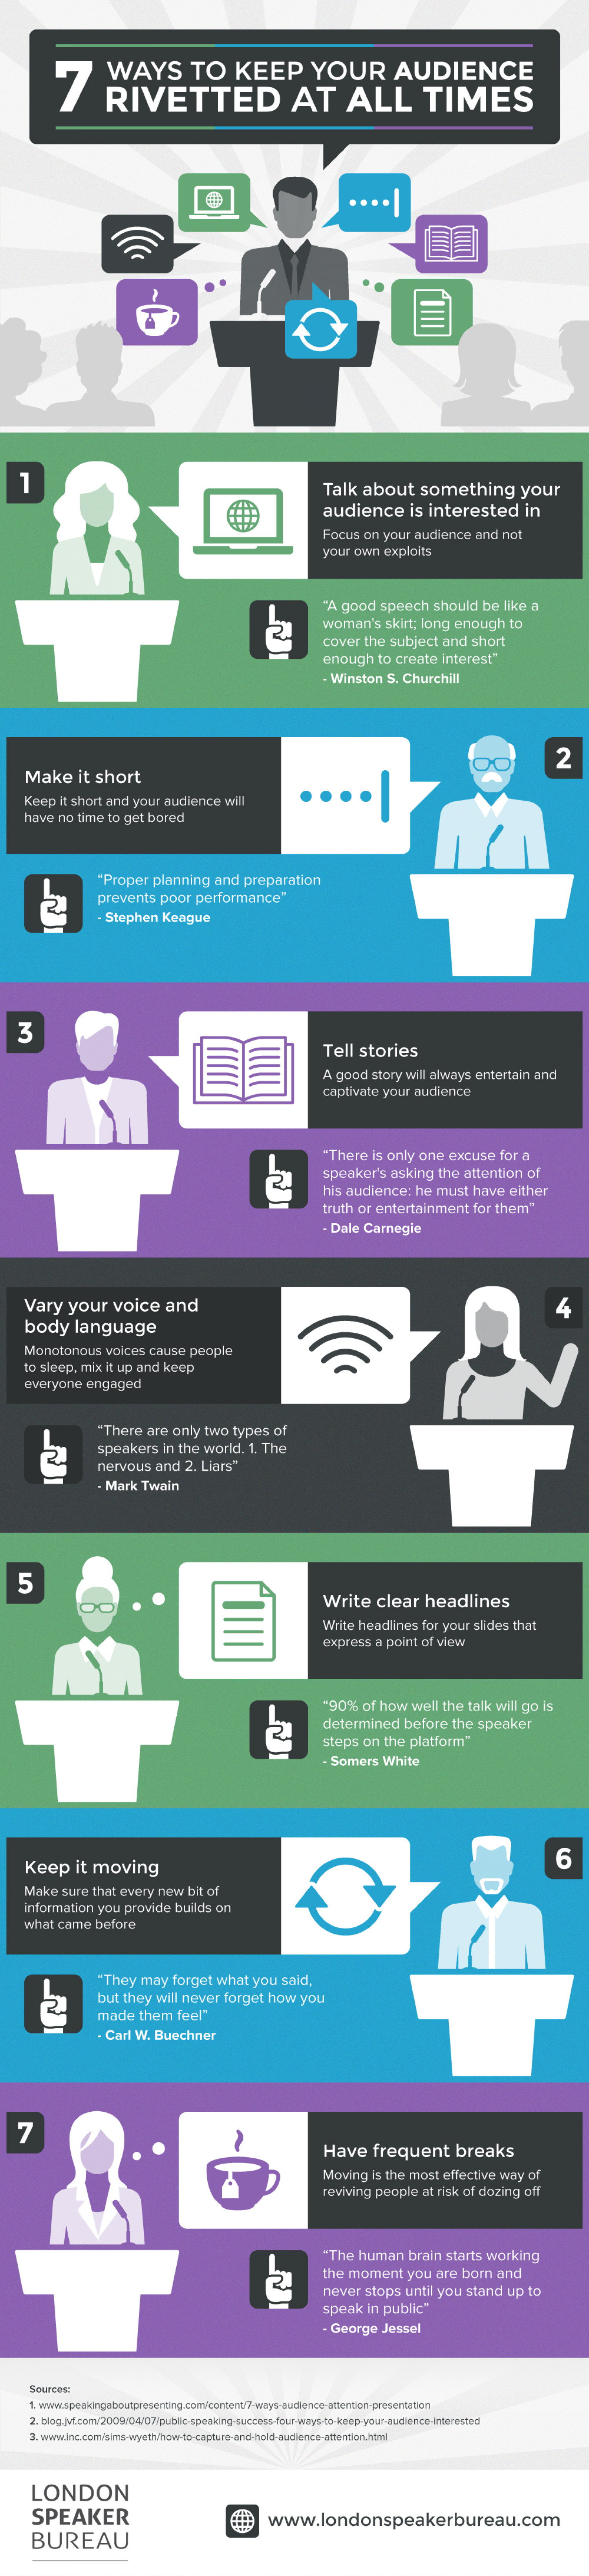 7 Ways to Keep Your Audience Riveted at All Times Infographic